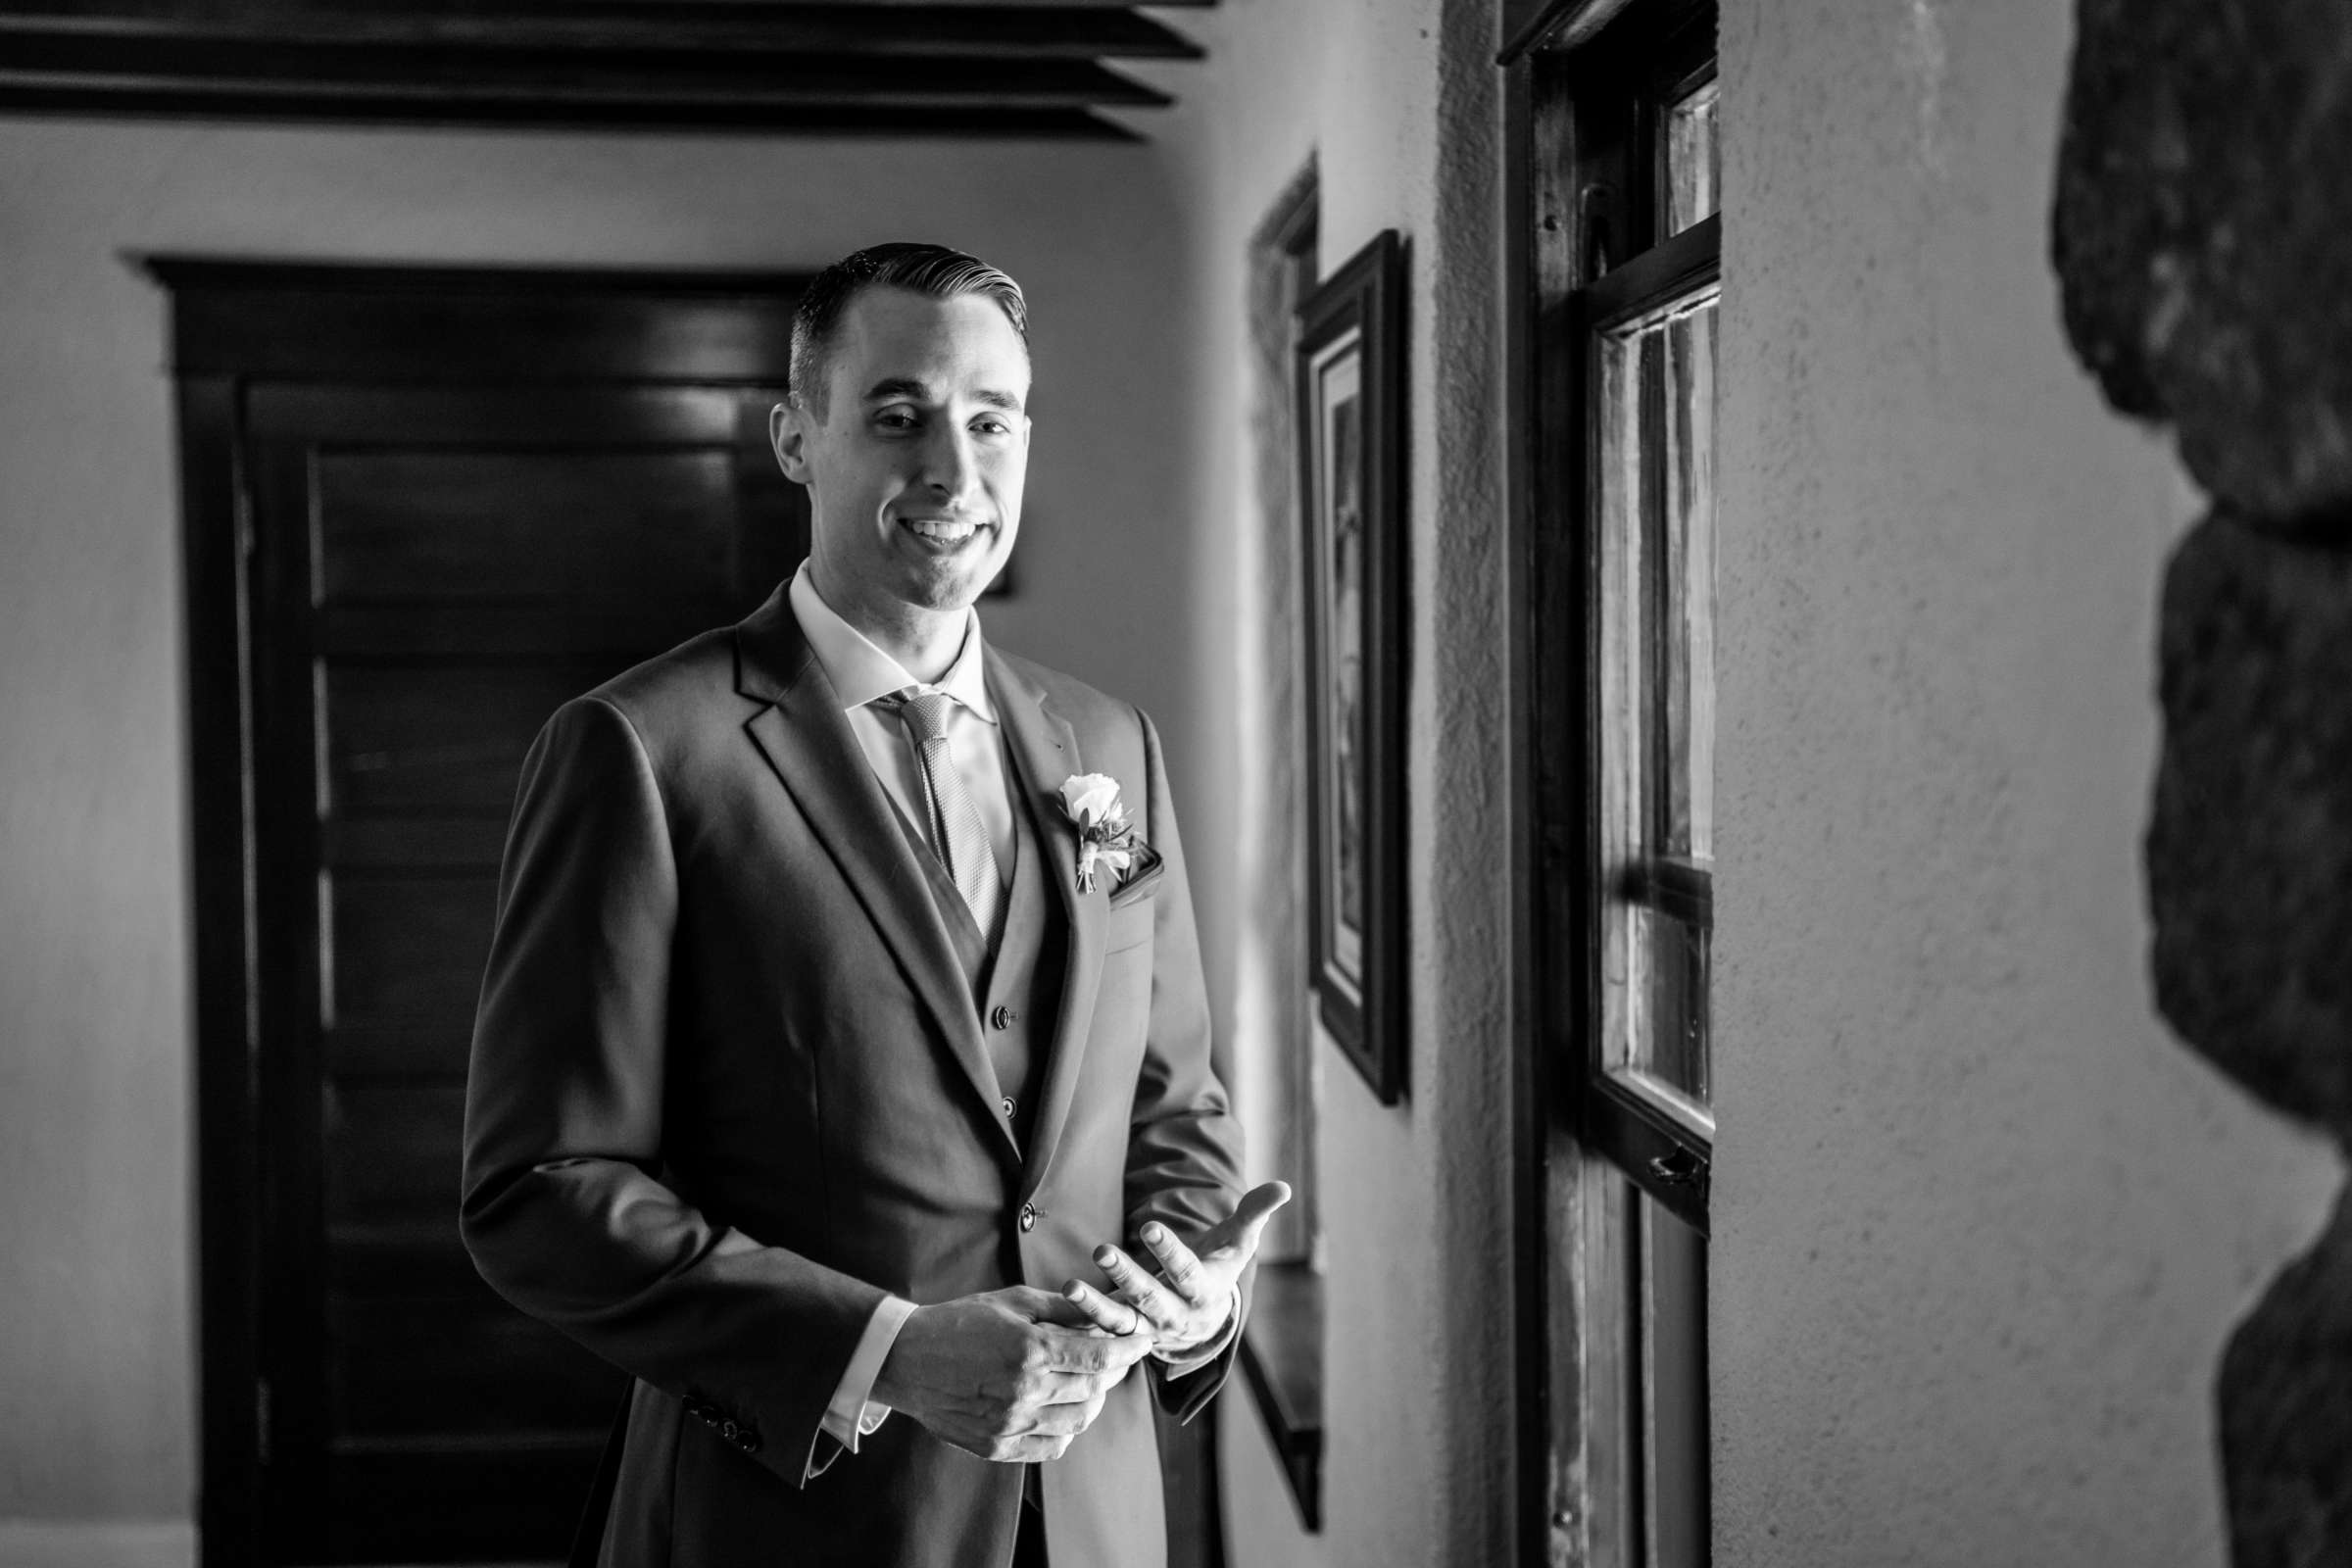 Mt Woodson Castle Wedding coordinated by I Do Weddings, Aya and Jared Wedding Photo #486917 by True Photography